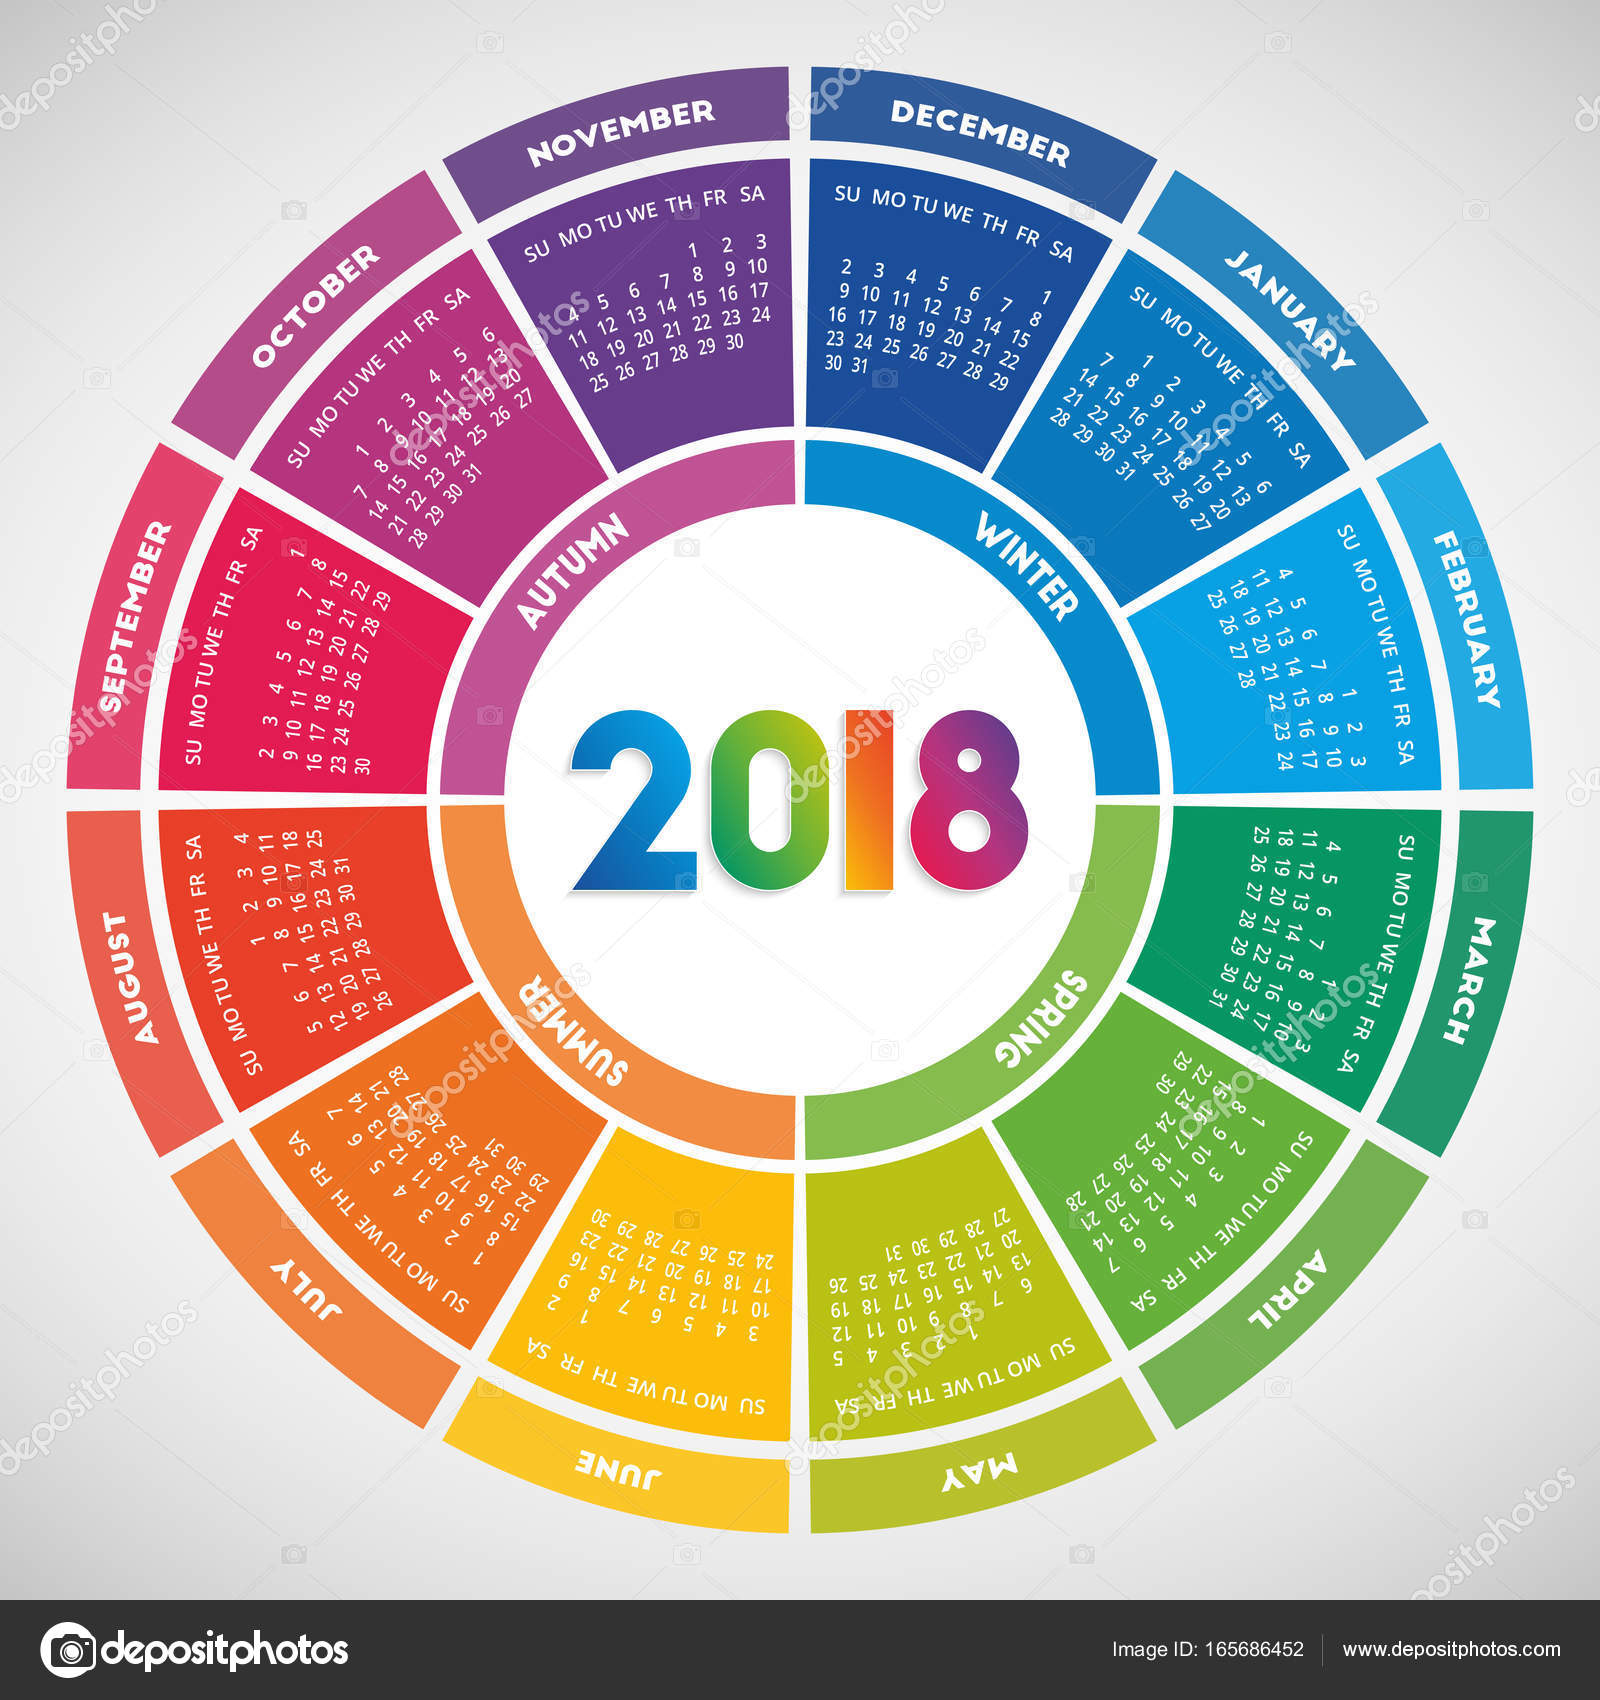 Design color rond calendrier 2018 image vectorielle for Architecture 2018